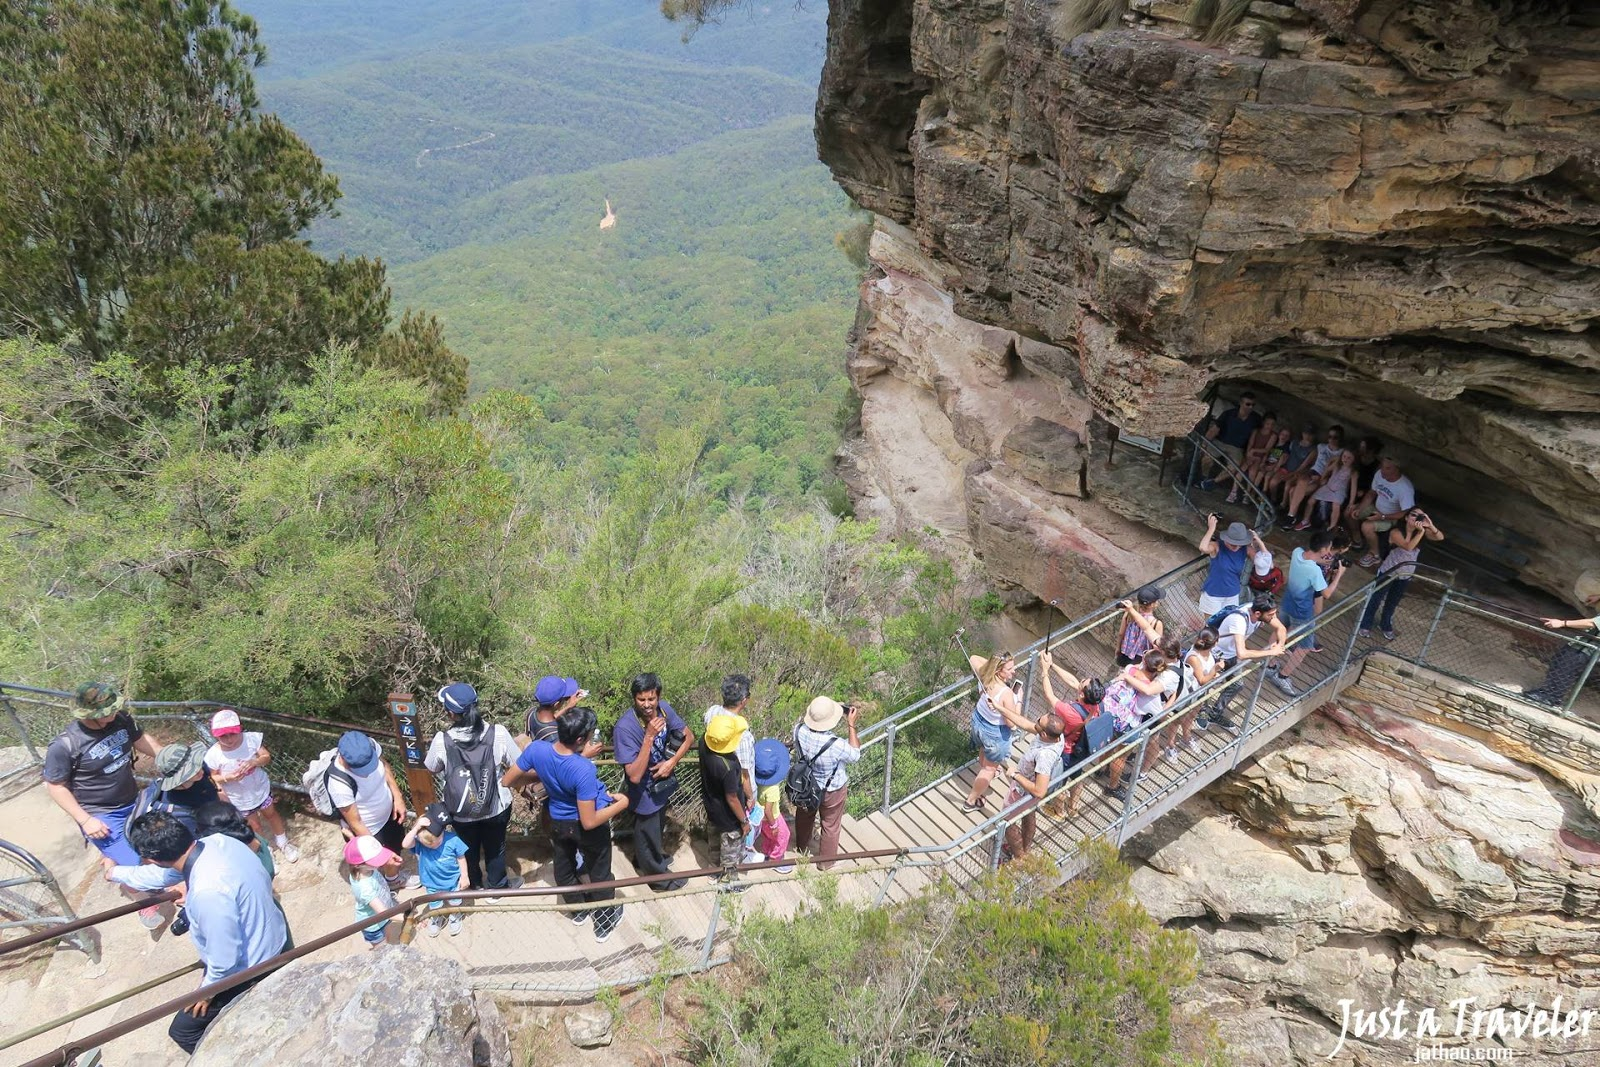 雪梨-景點-藍山-三姊妹岩-澳洲-Sydney-Blue-Mountains-Three-Sisters-Tourist-Attraction-Australia